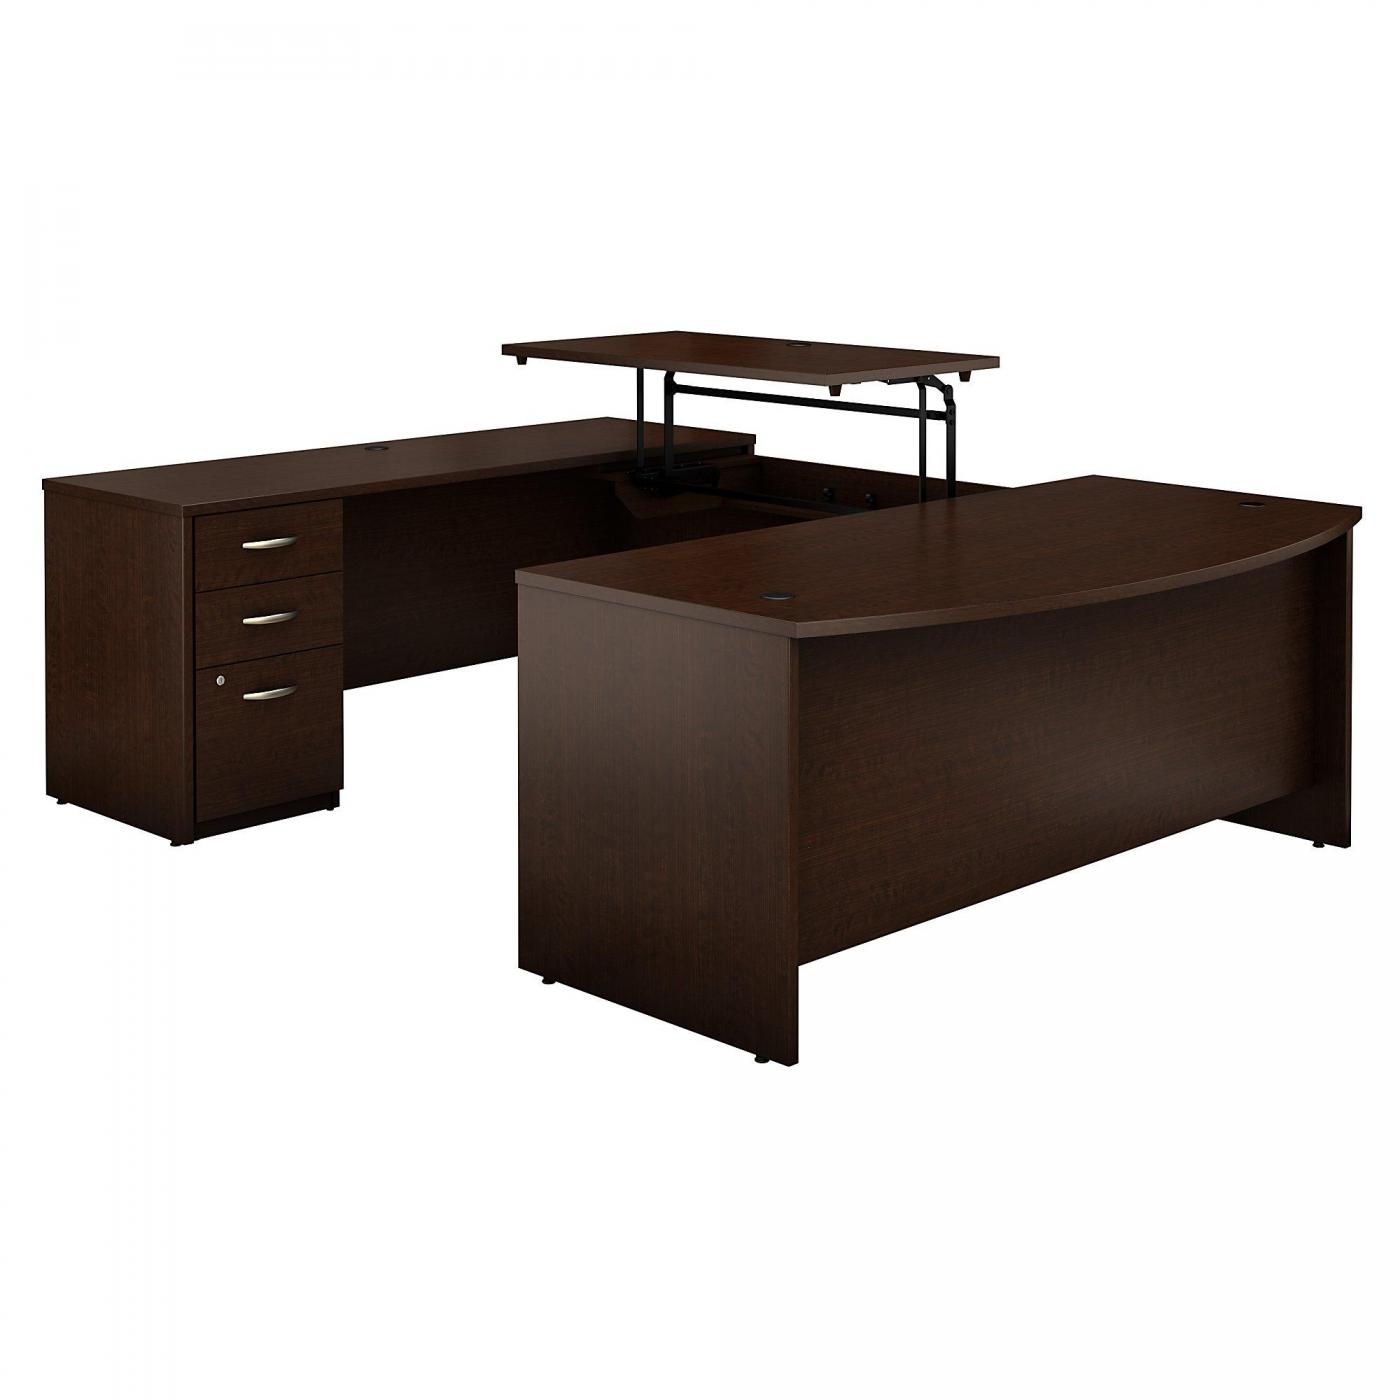 <font color=#c60><b>BUSH BUSINESS FURNITURE SERIES C ELITE 72W X 36D 3 POSITION SIT TO STAND BOW FRONT U SHAPED DESK WITH 3 DRAWER FILE CABINET. FREE SHIPPING</font></b>